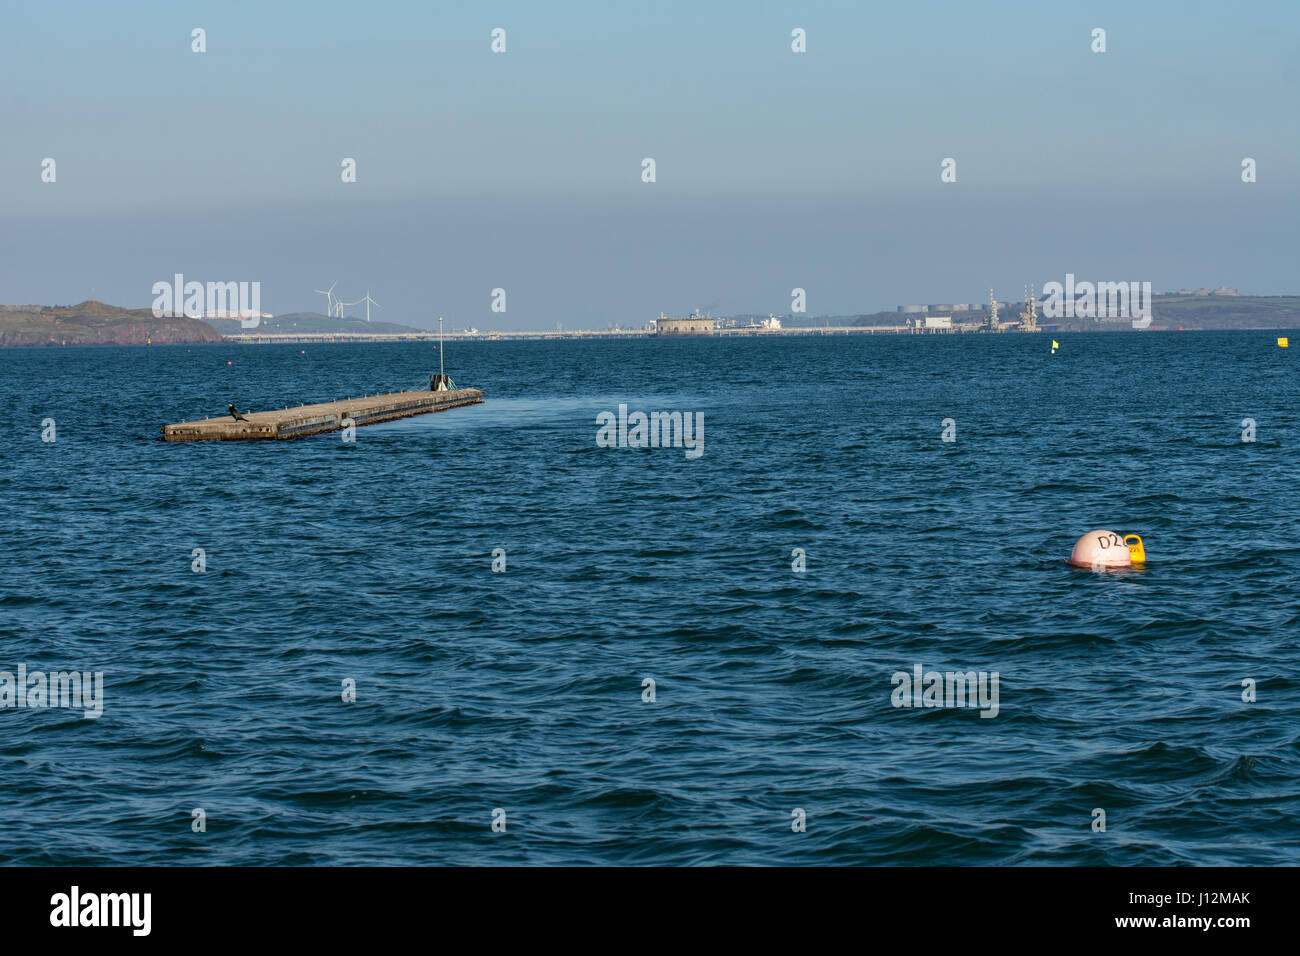 Wind shadow creating calm water in lee of outer pontoon - Stock Image